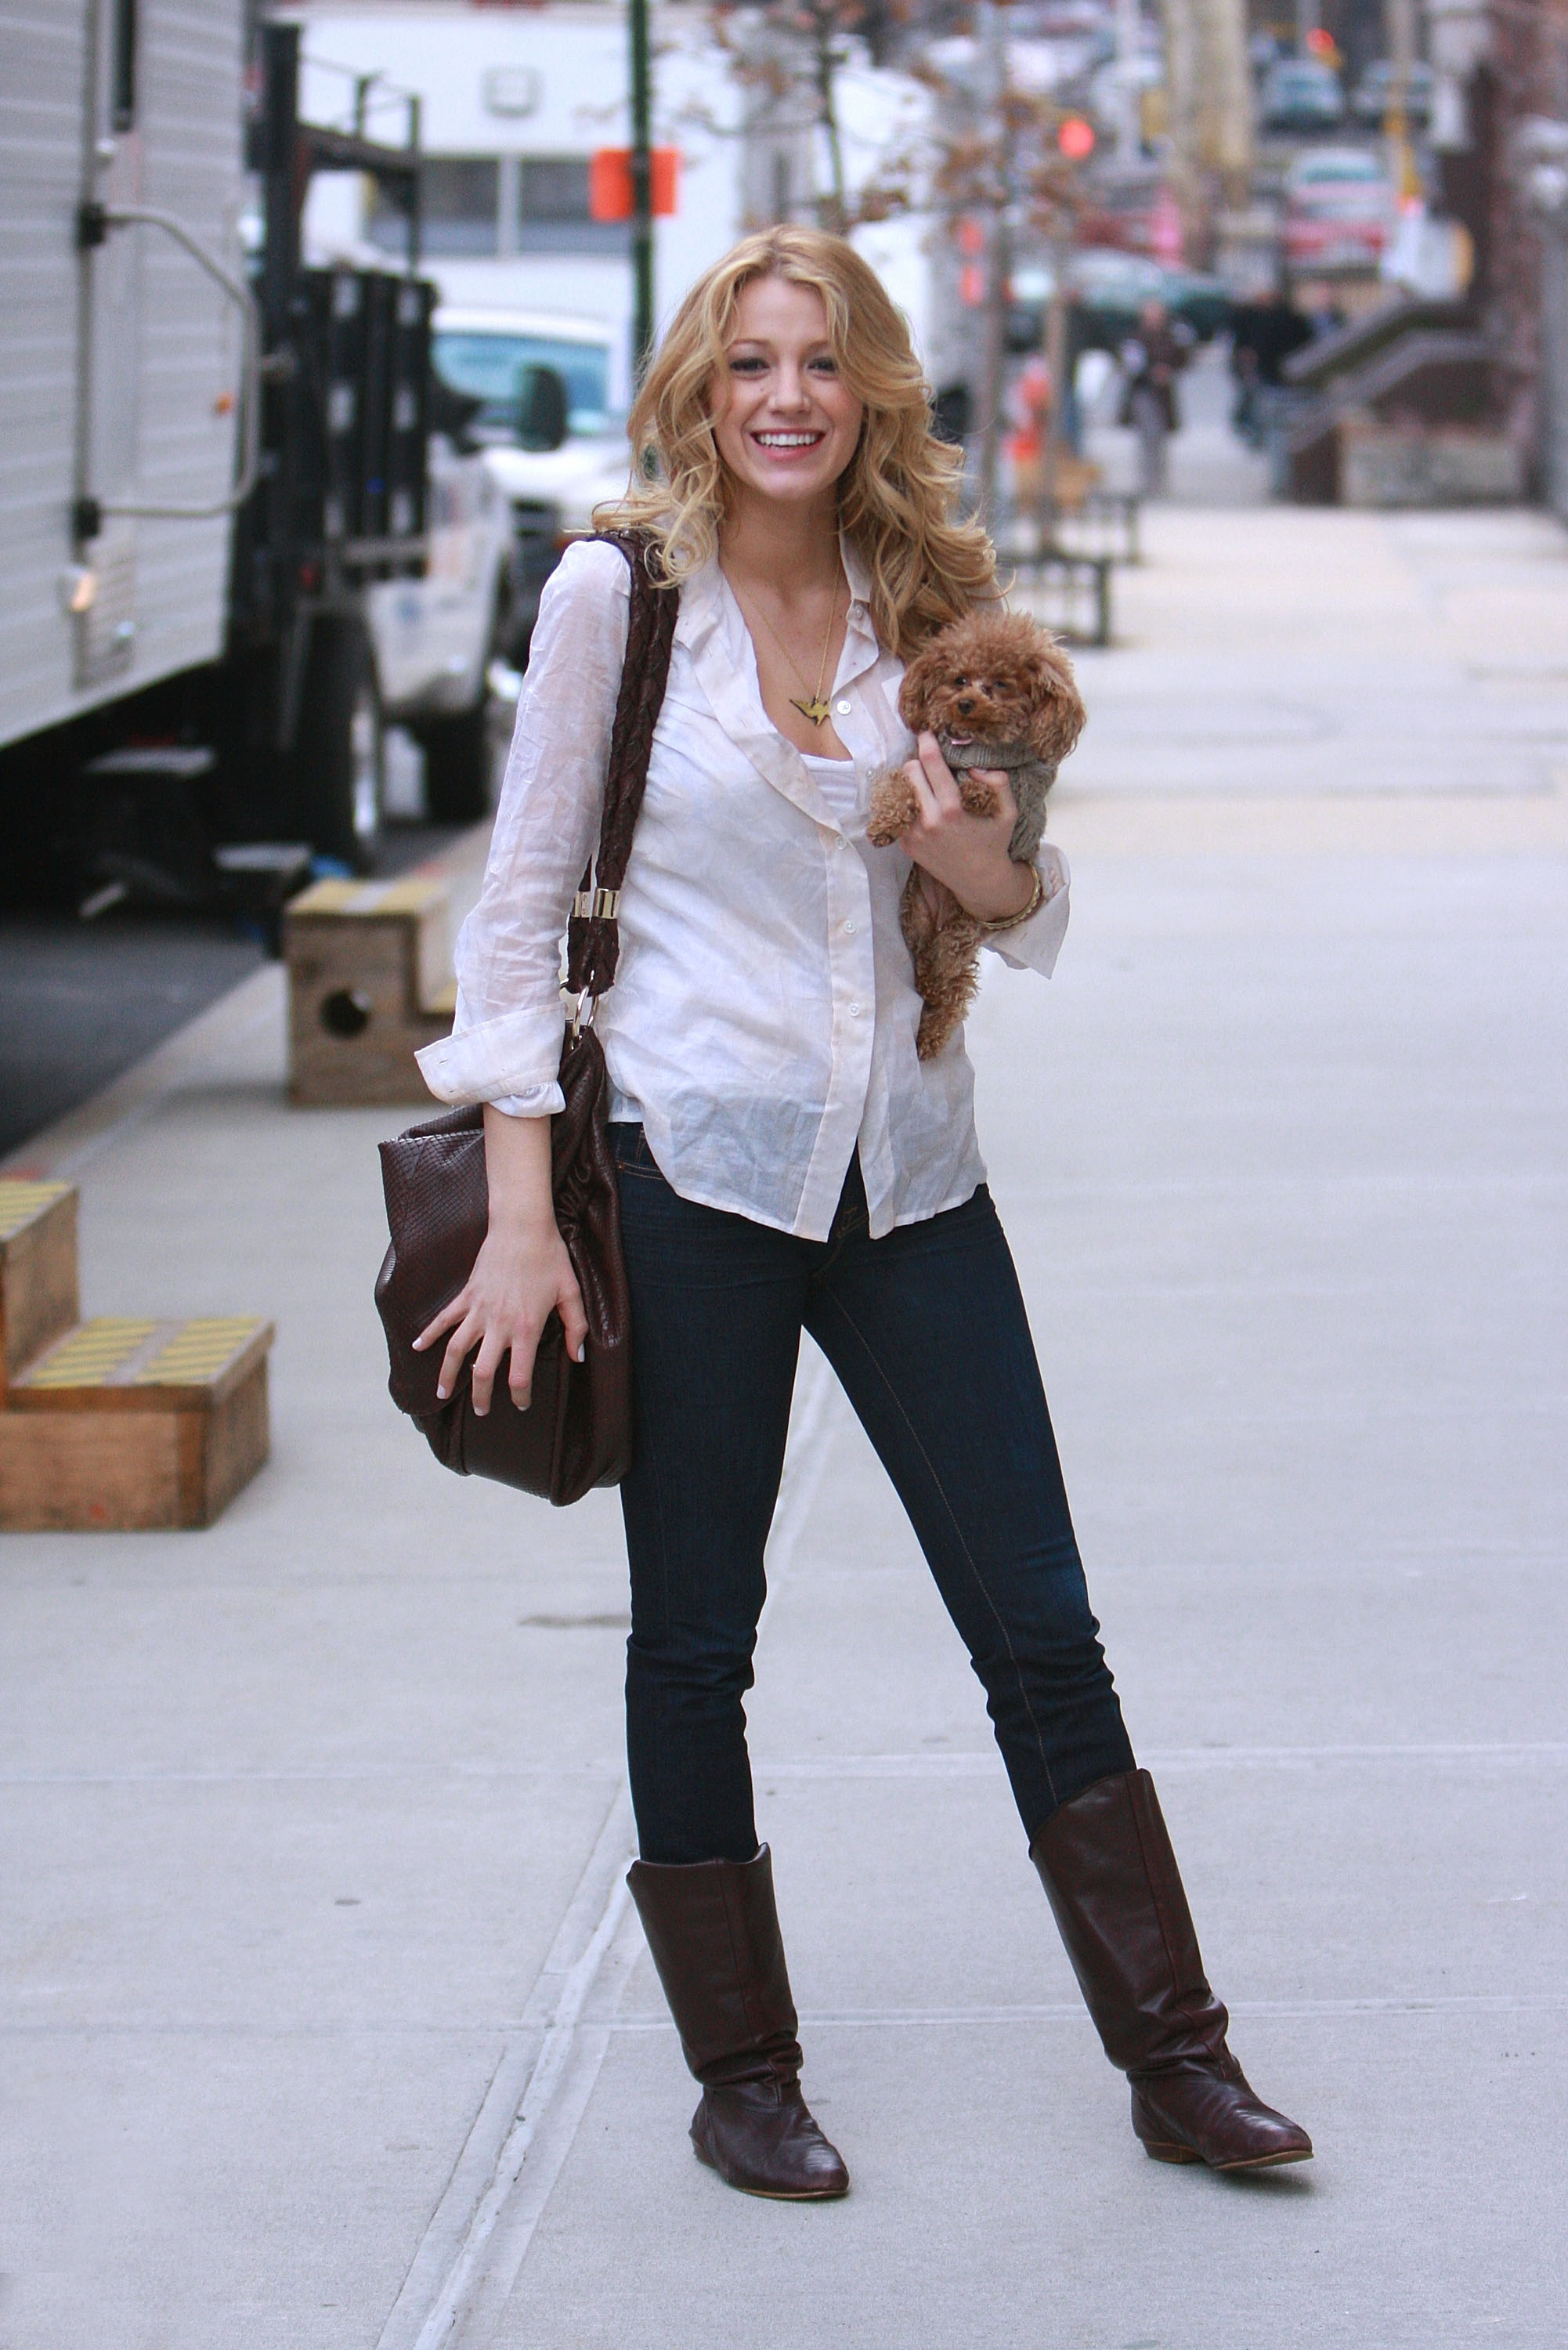 Blake Lively Style Before The Blockbuster Catch Blake 39 S Best Looks Popsugar Fashion